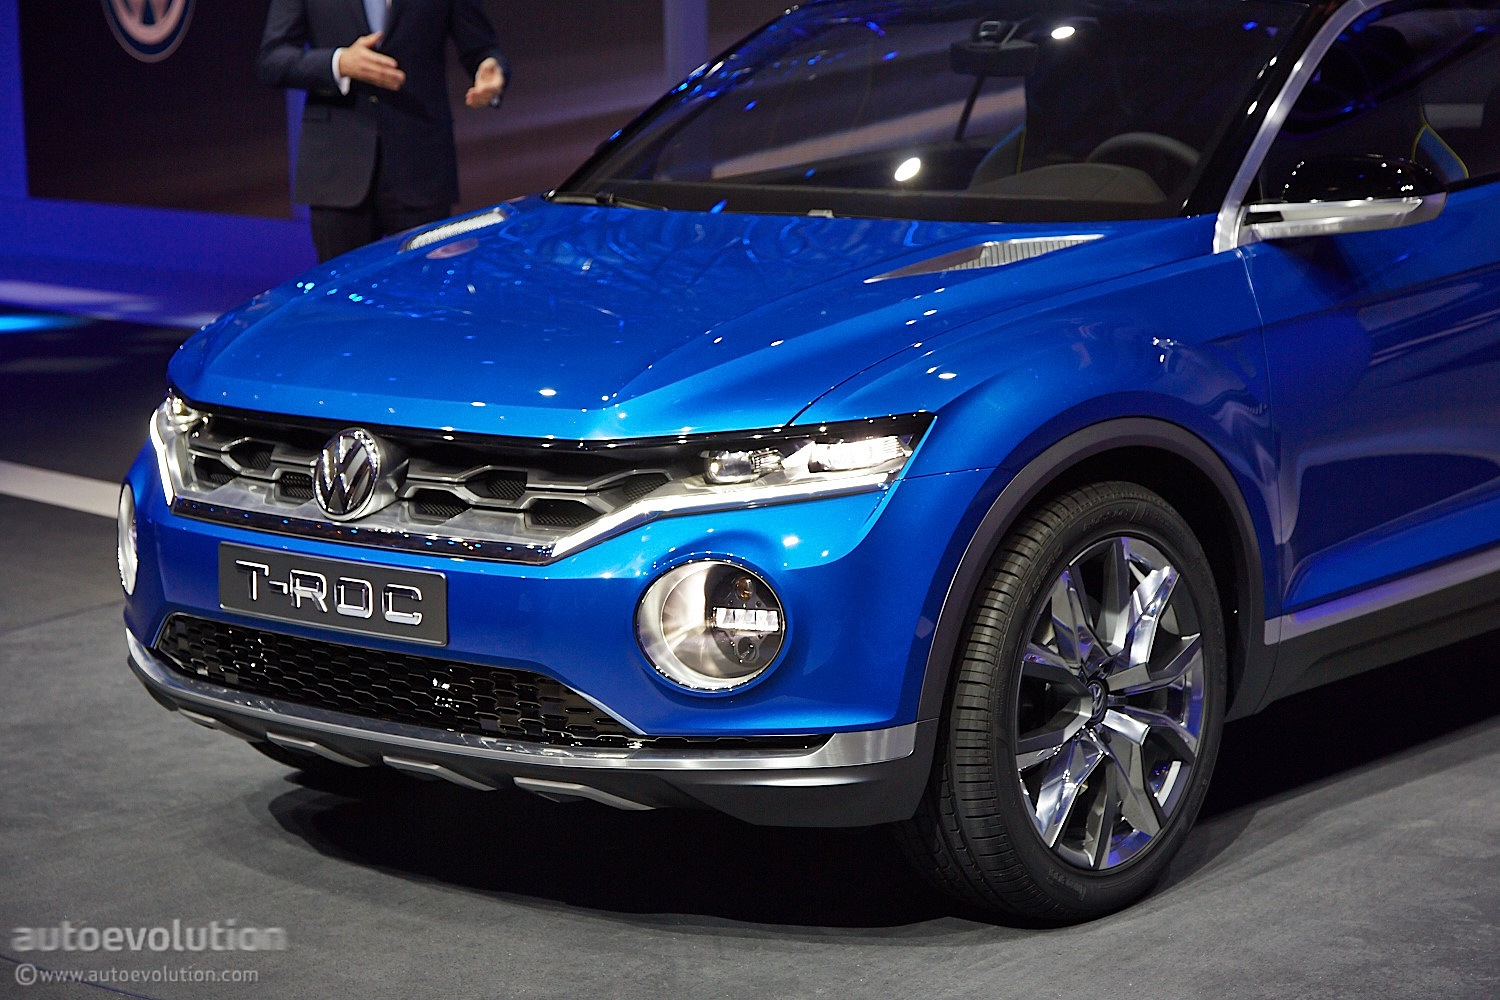 volkswagen t roc will go on sale in late 2017 autoevolution. Black Bedroom Furniture Sets. Home Design Ideas